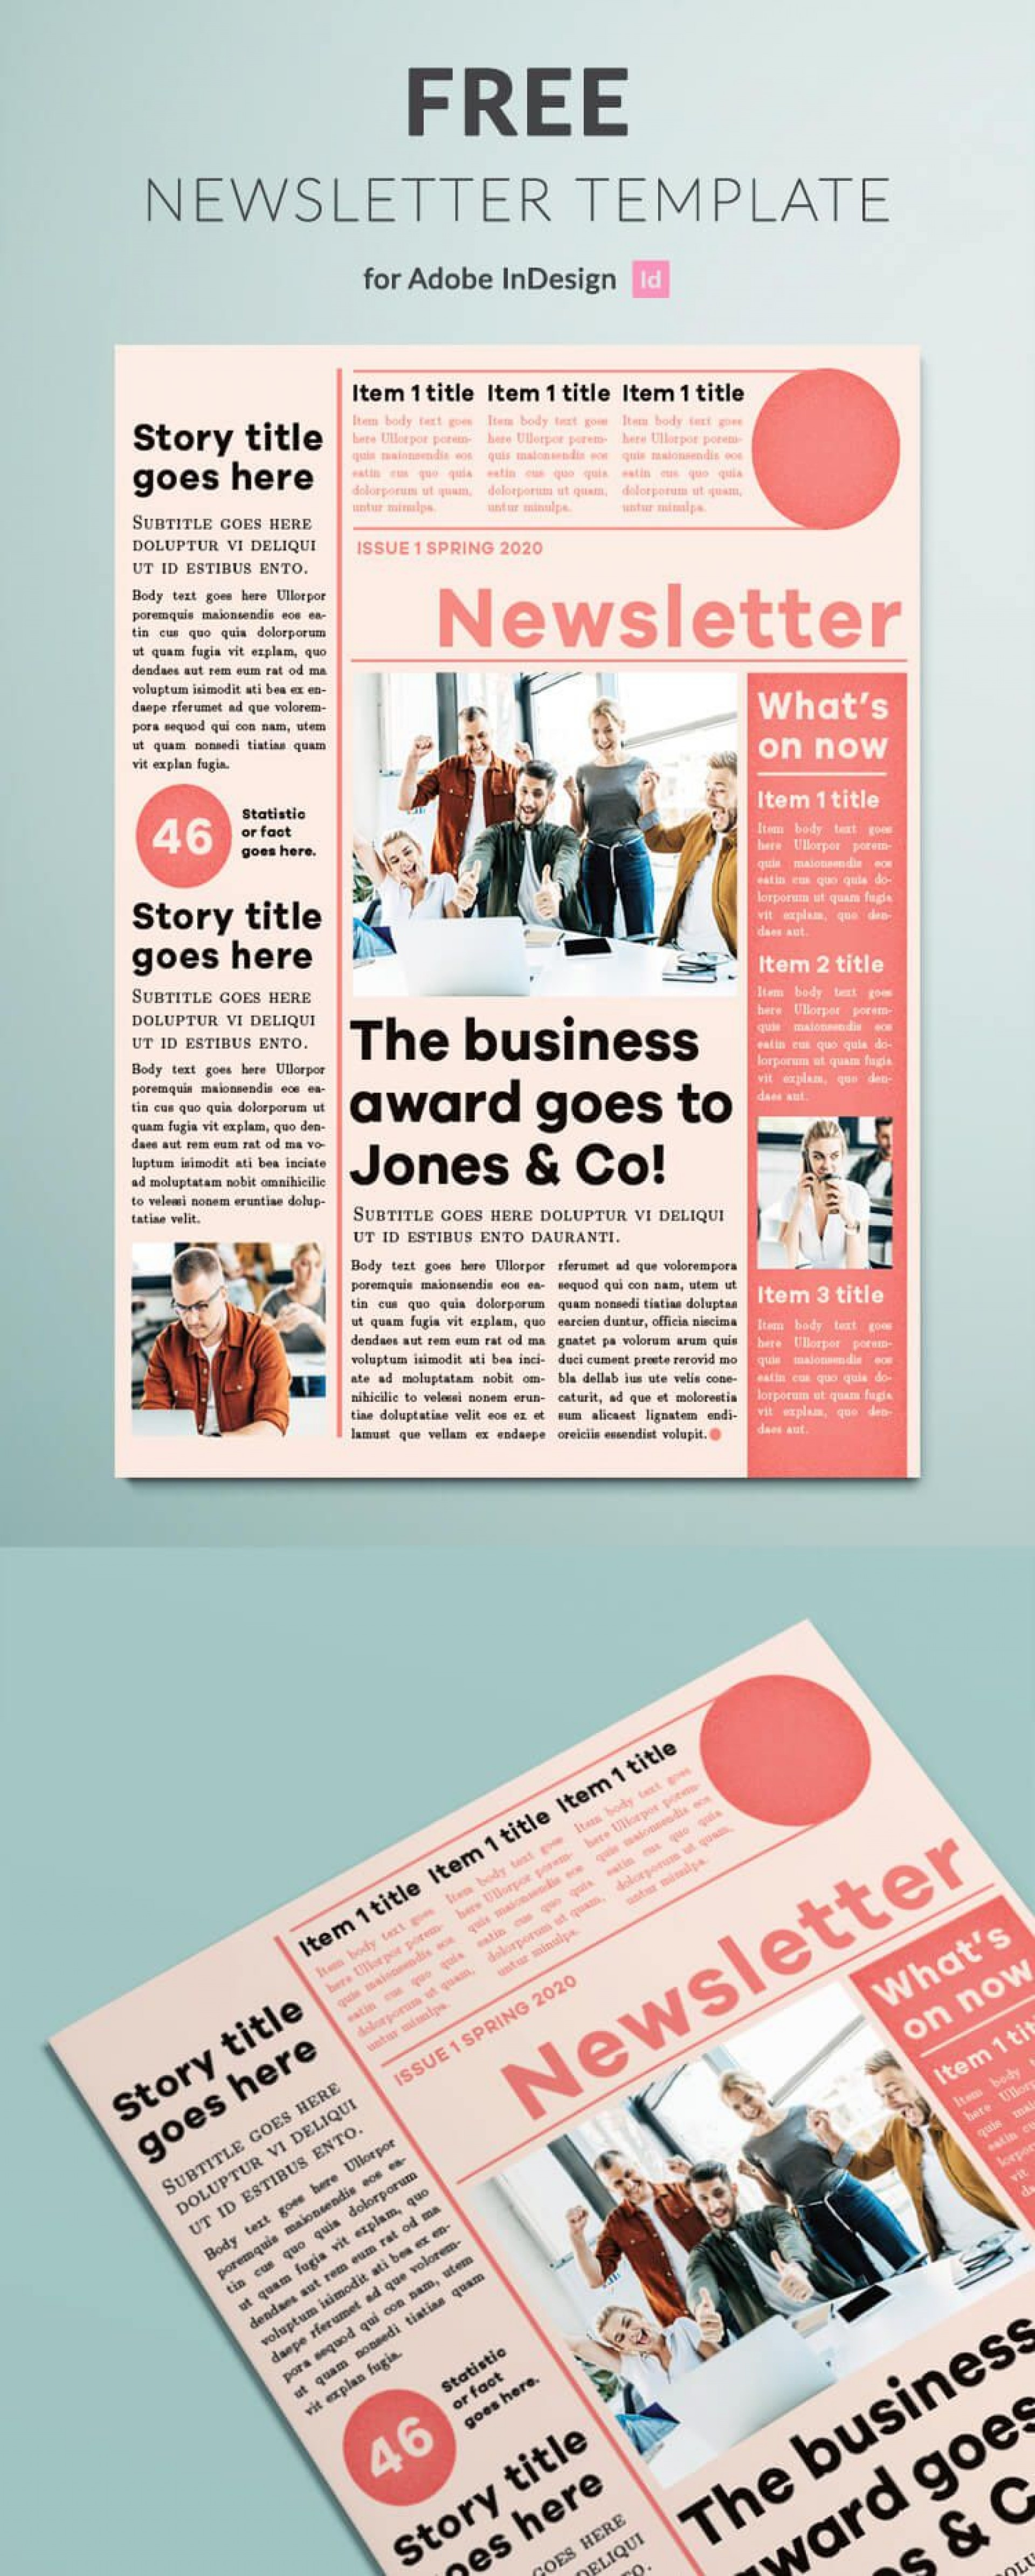 008 Awful Indesign Newsletter Template Free High Def  Cs6 Email Adobe Download1920